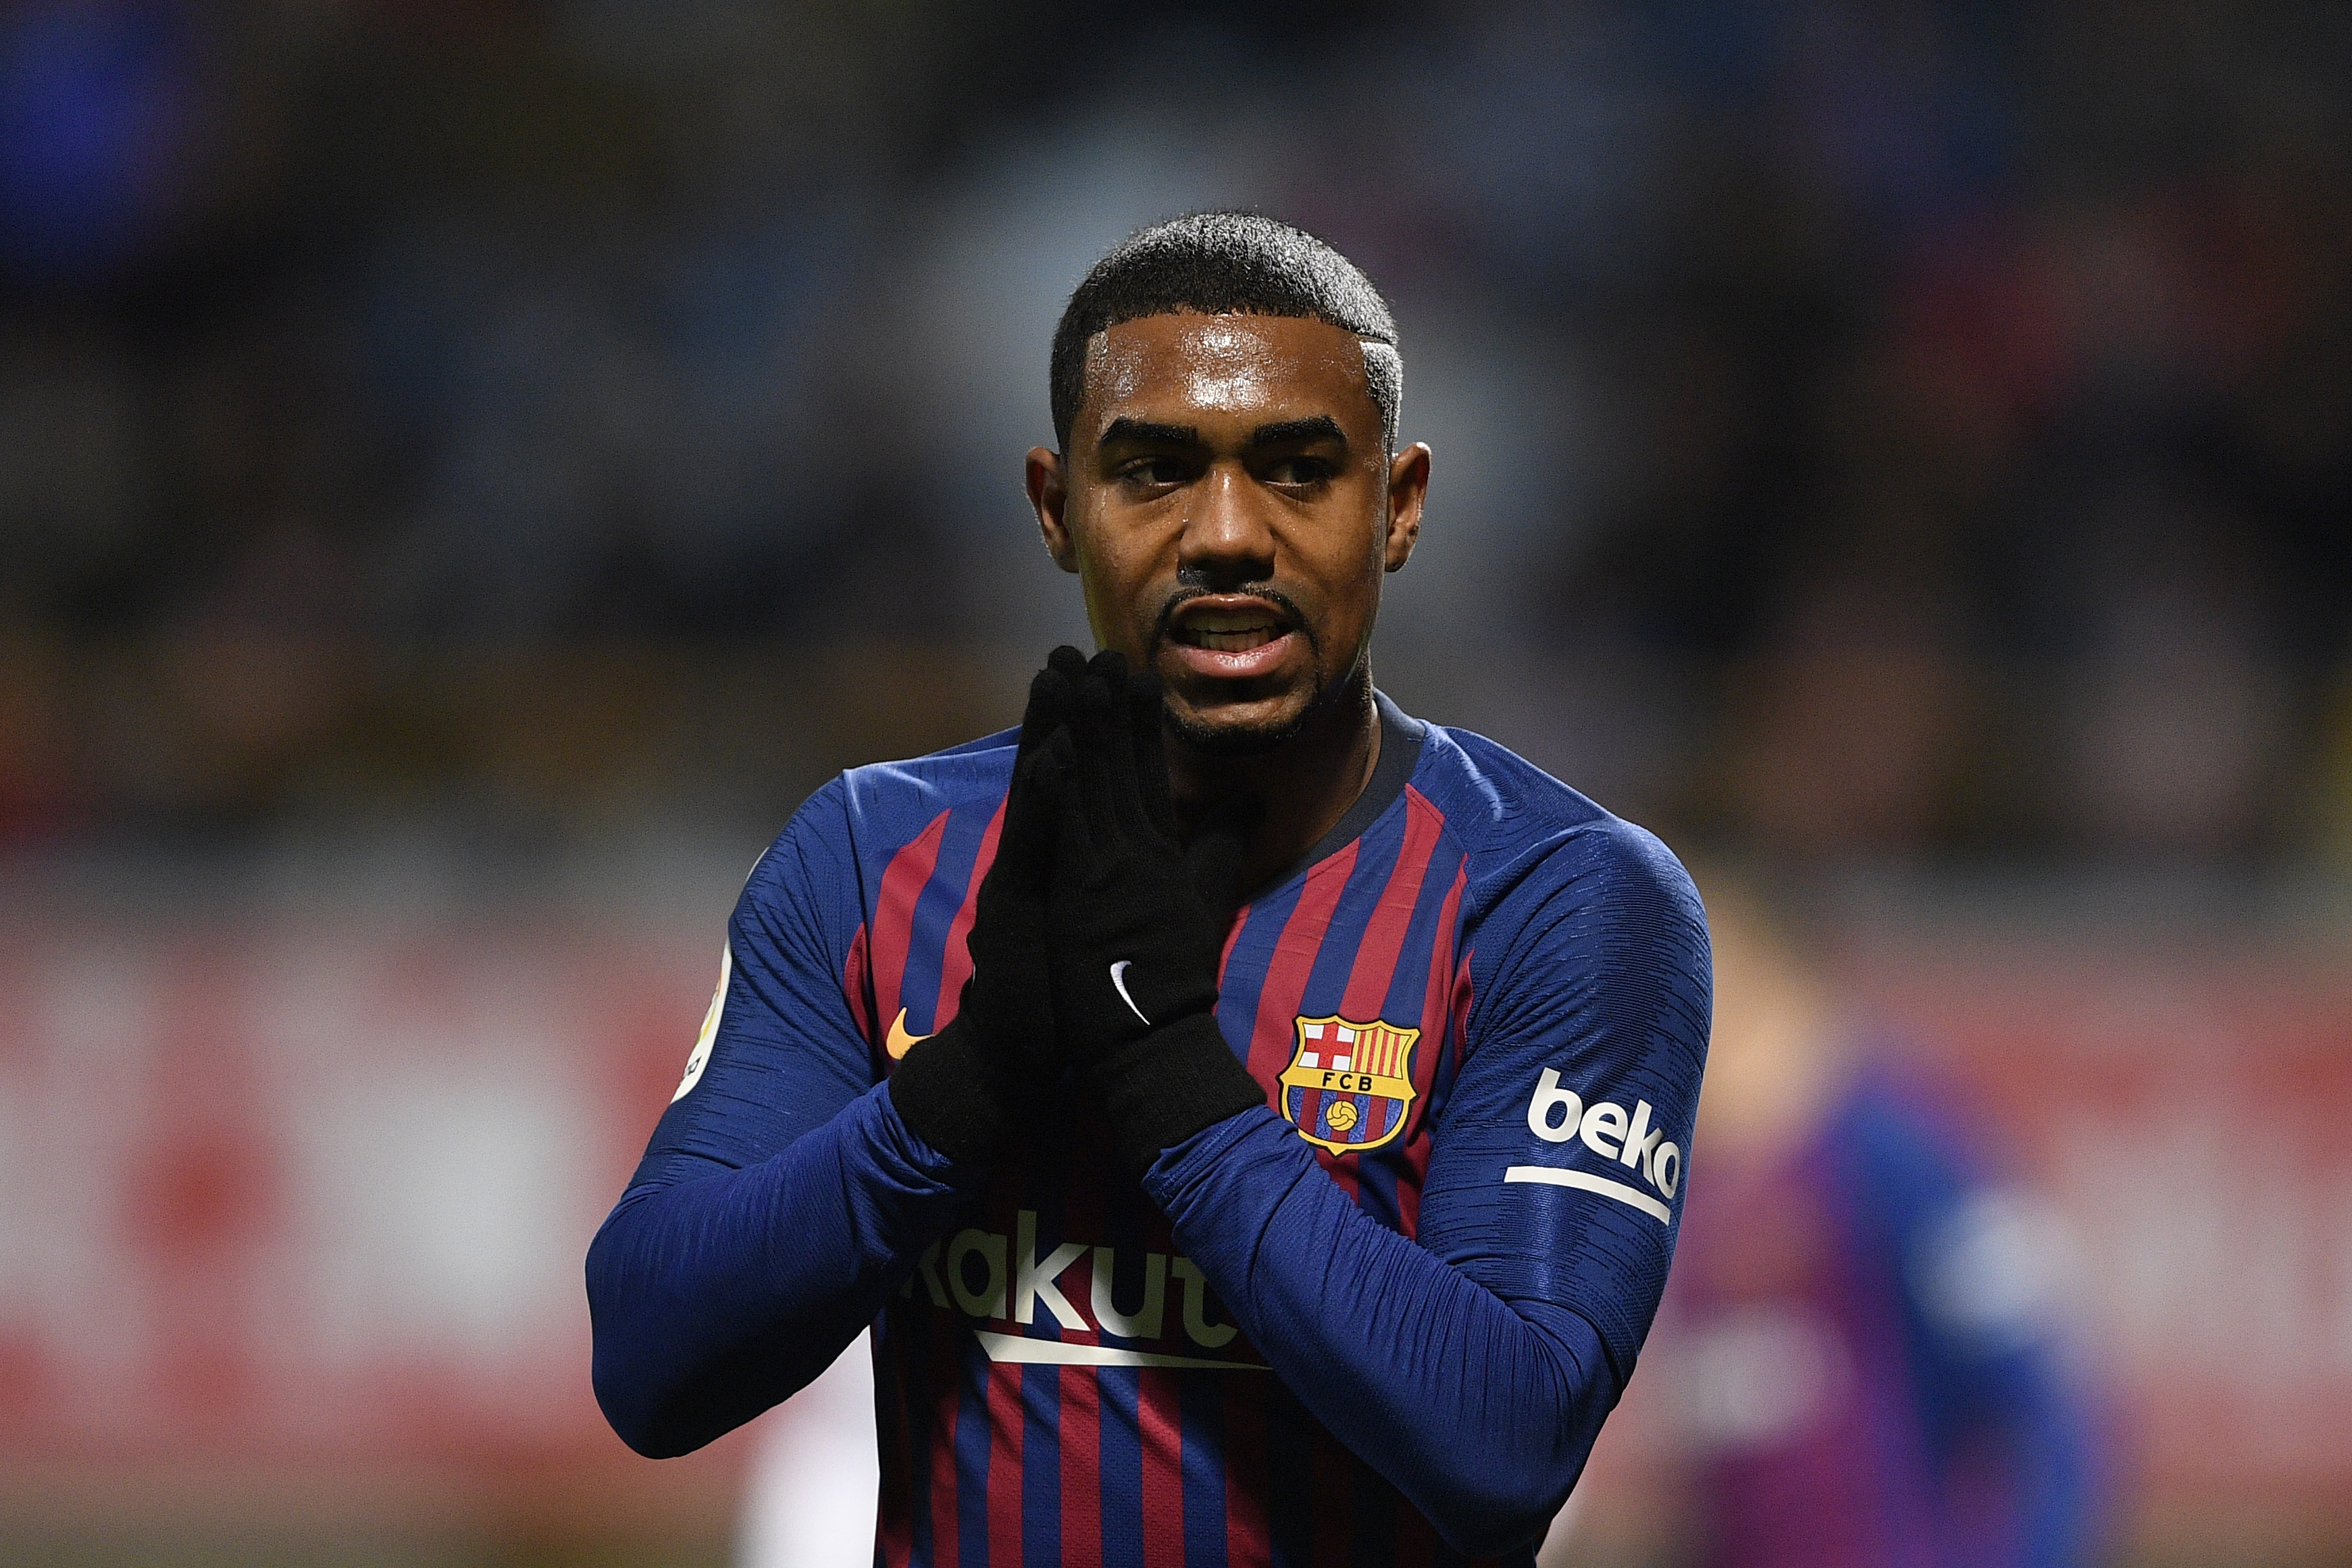 Malcom could move to the Premier League after a lack of game time at Barcelona. (Photo courtesy: AFP/Getty)